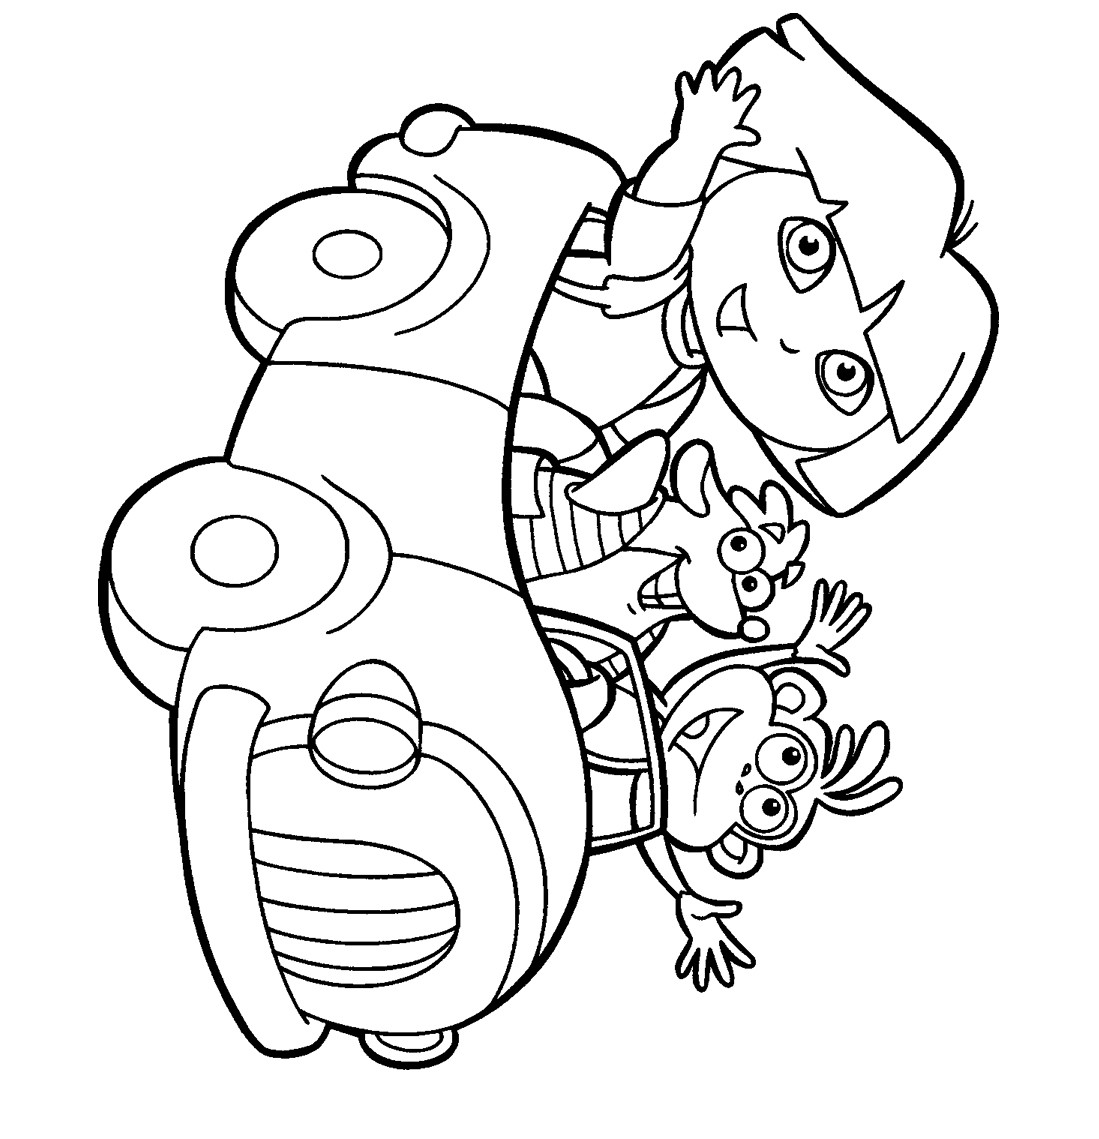 Printable Kids Coloring Pages  Printable coloring pages for kids